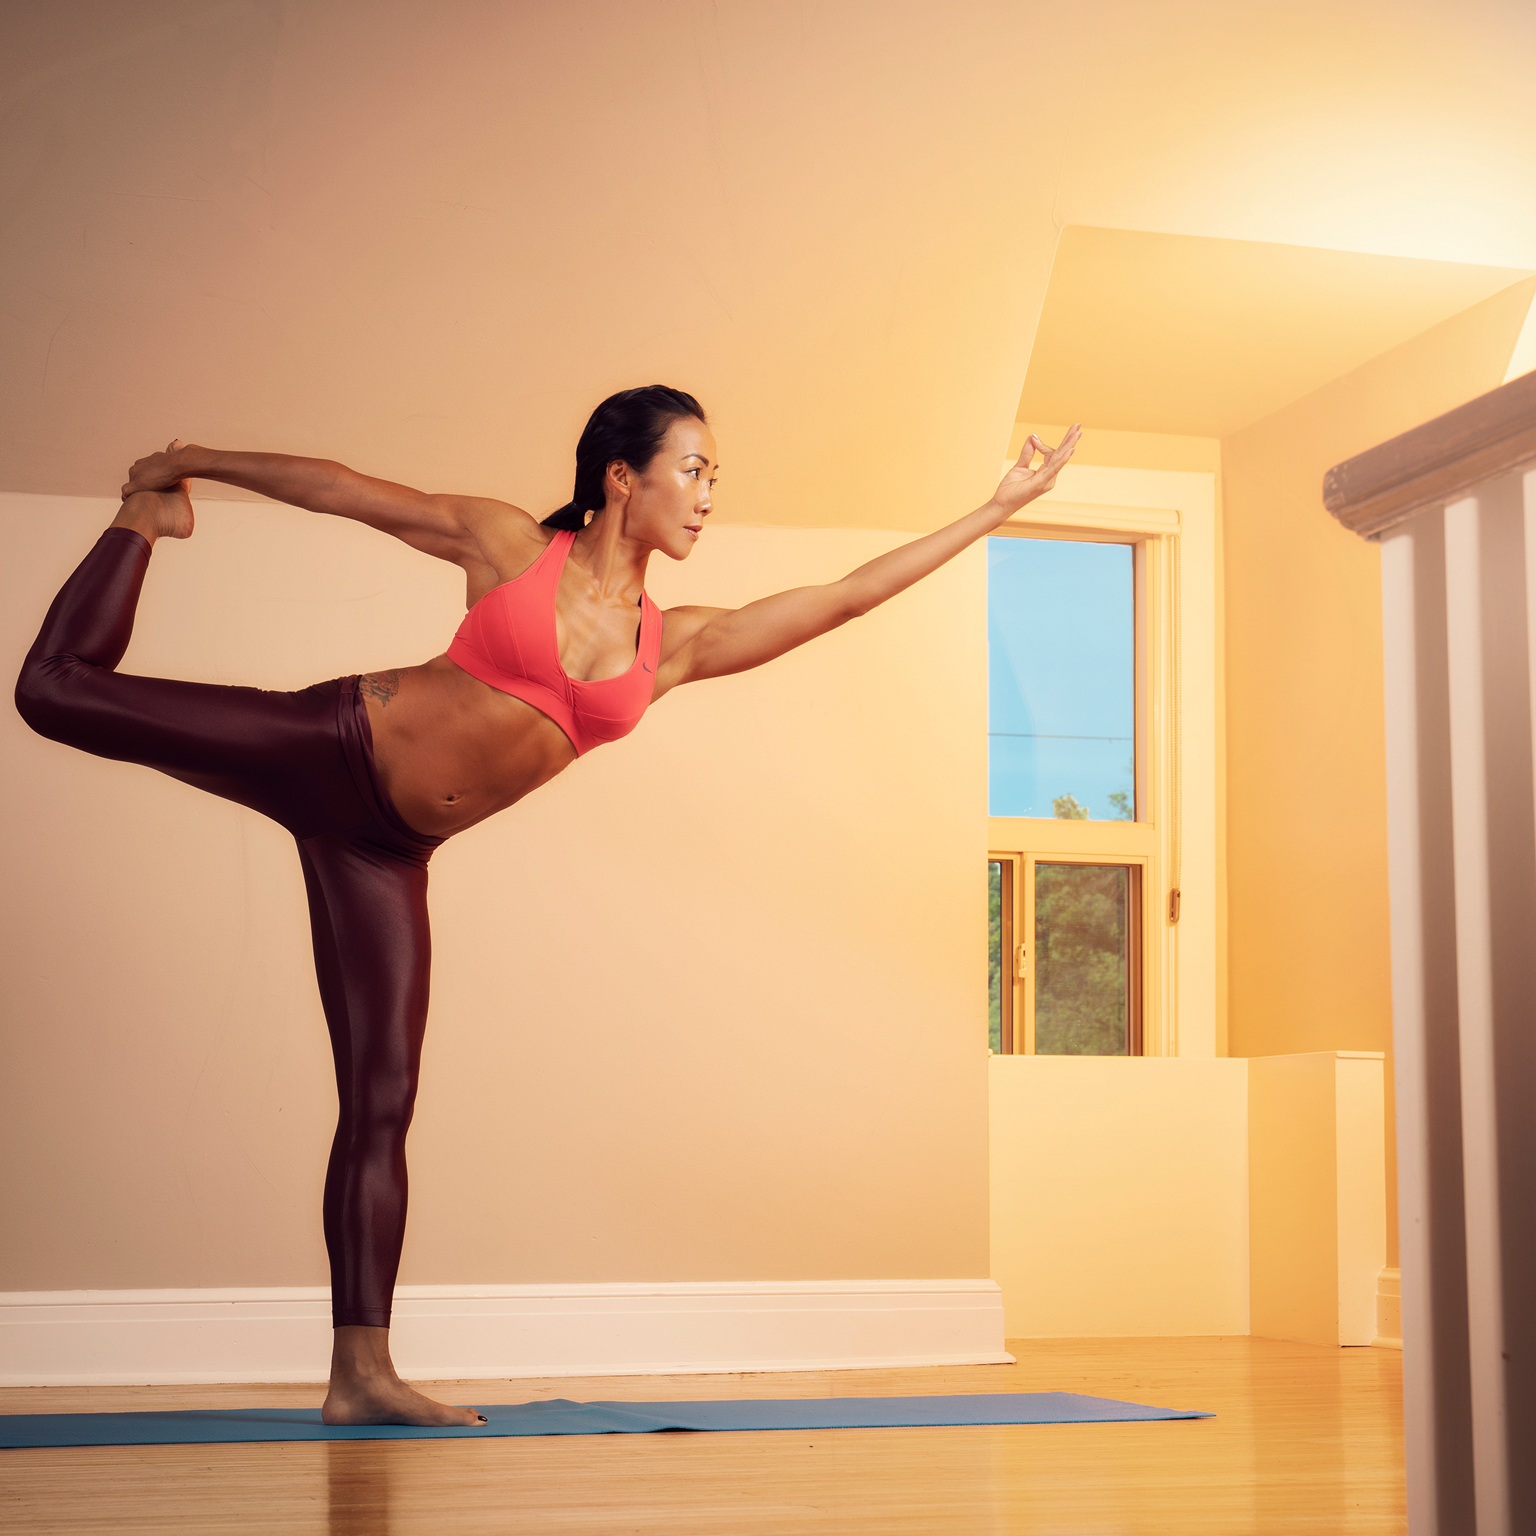 Toronto-Fitness-Model-Agency-Yoga-Commercial-Lifestyle-Virginial-Lee